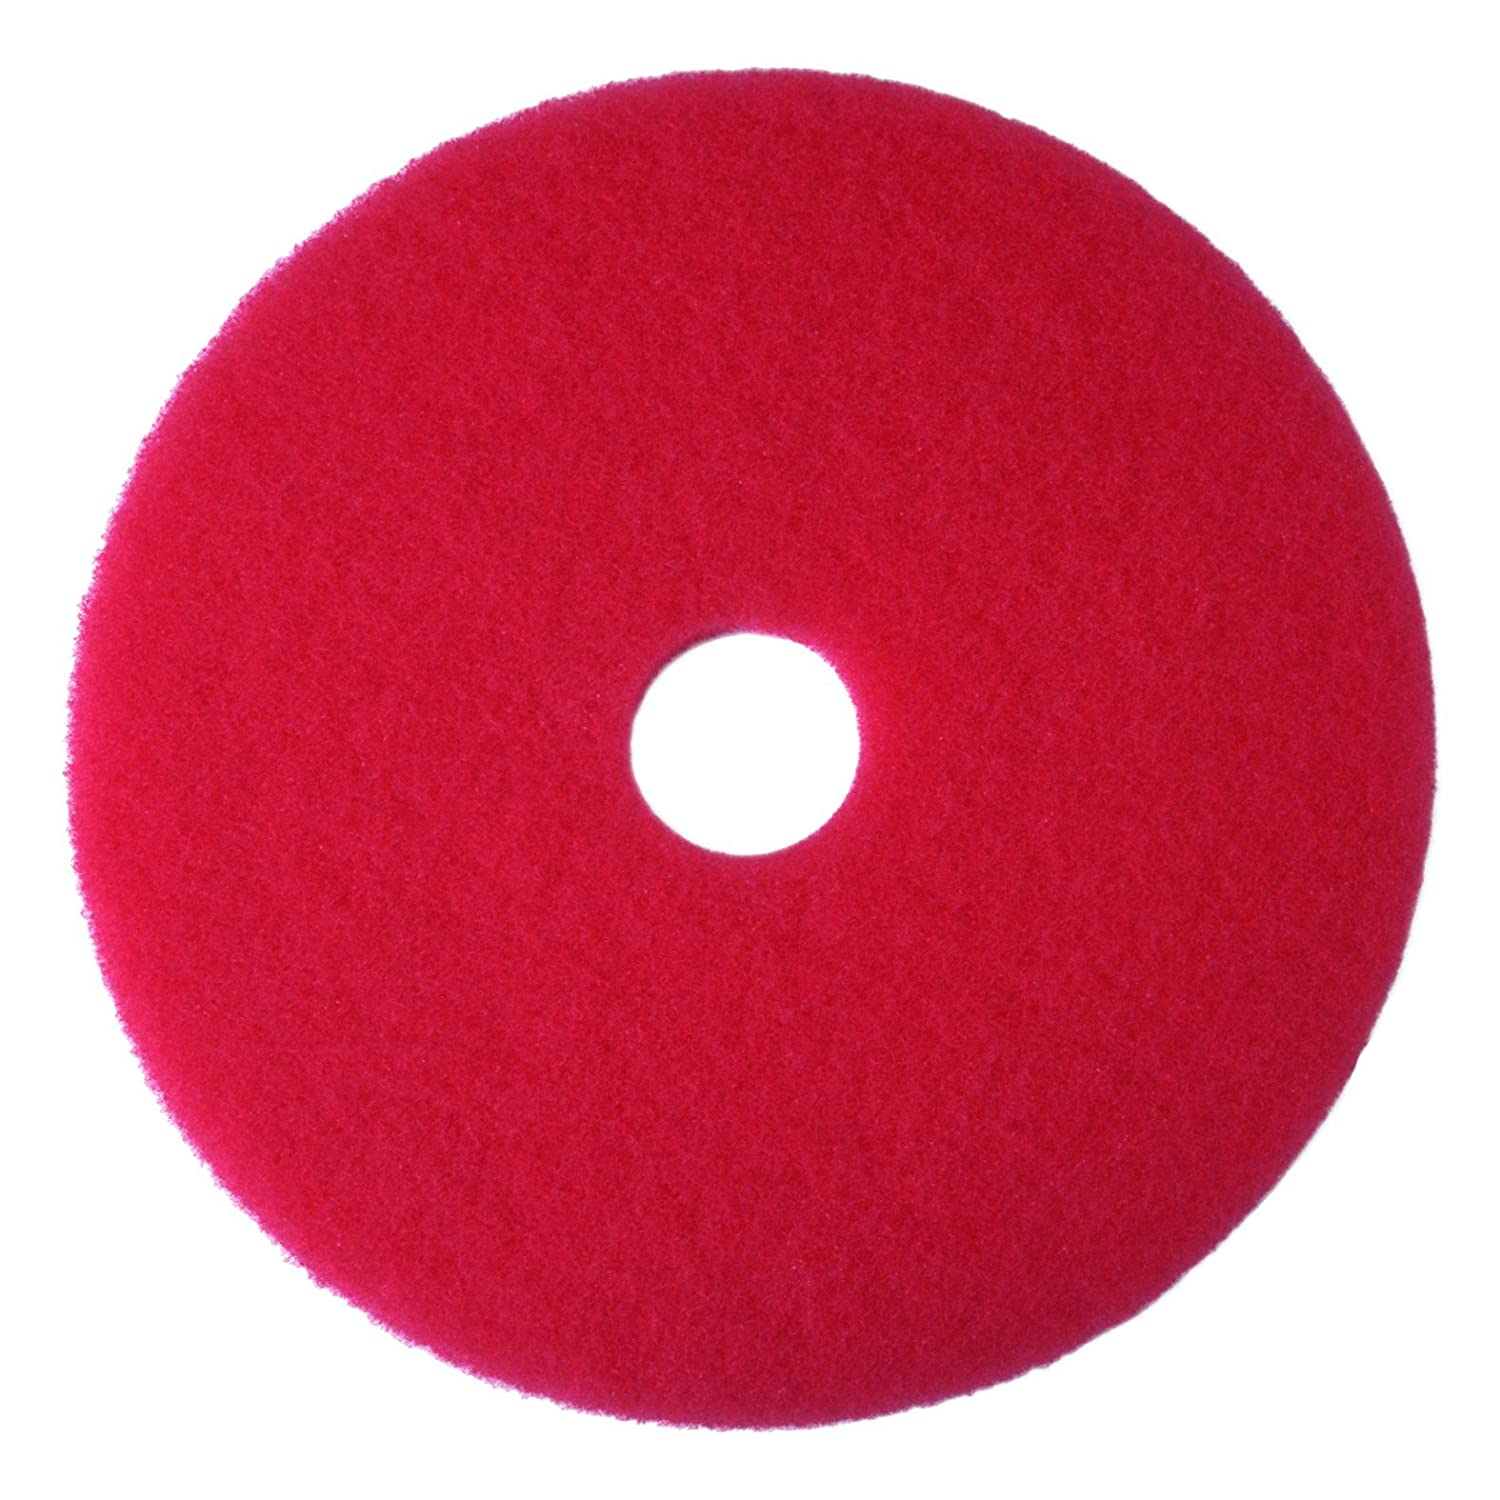 "3M Red Buffer Pad 5100, 20"" Floor Buffer, Machine Use (Case of 5) - 35053"